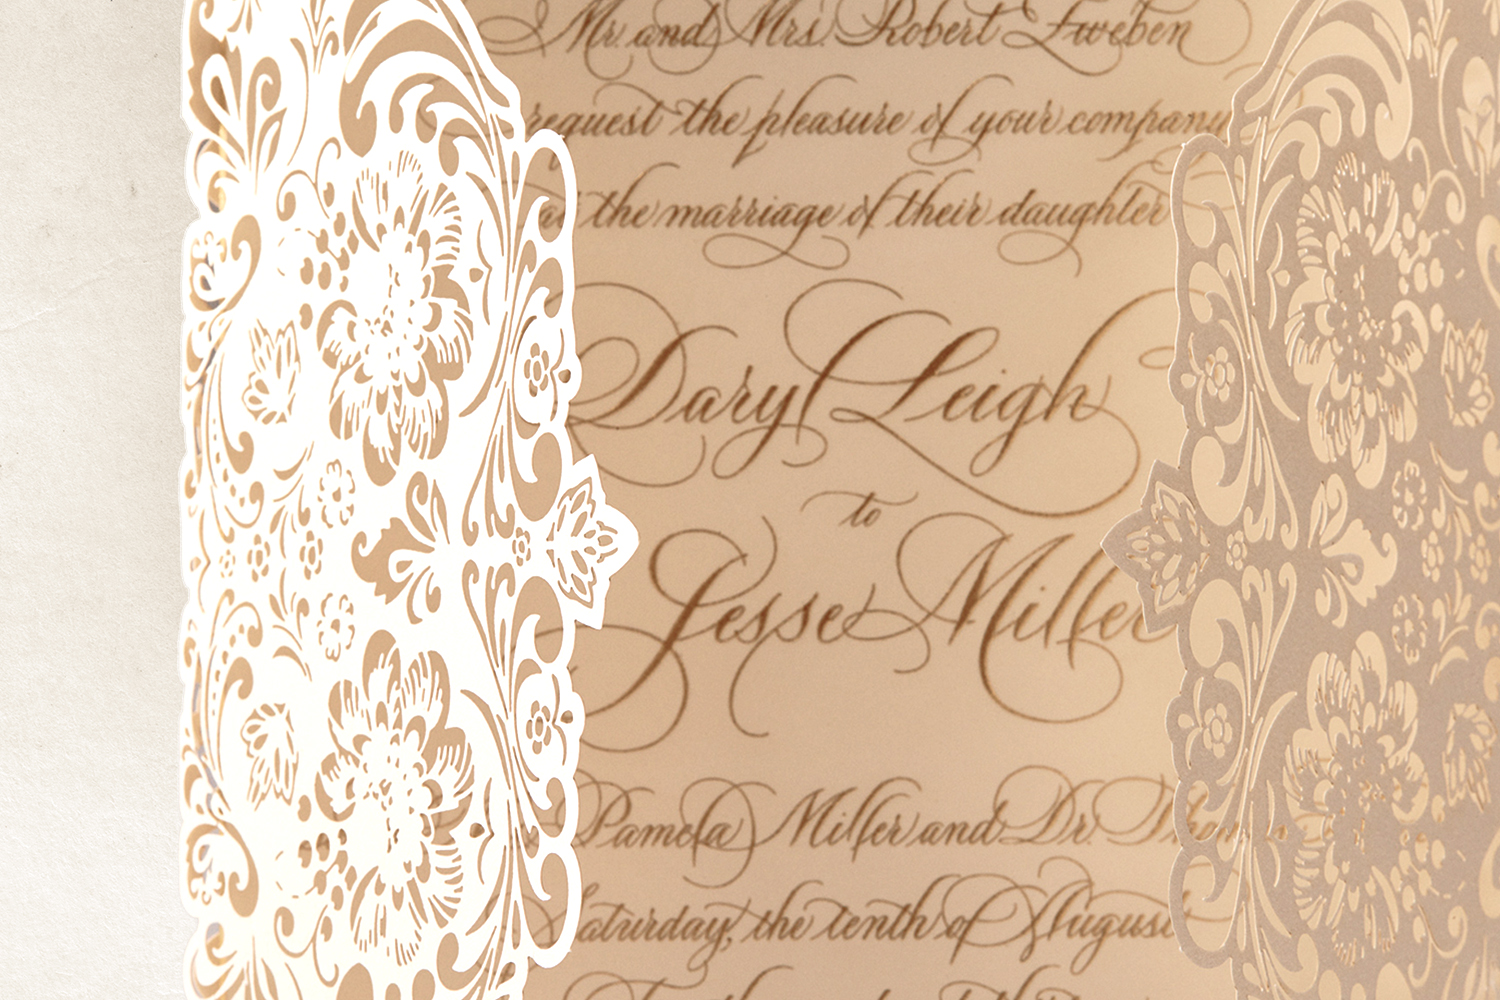 Formal_Engraved_Wedding_invite_5.jpg